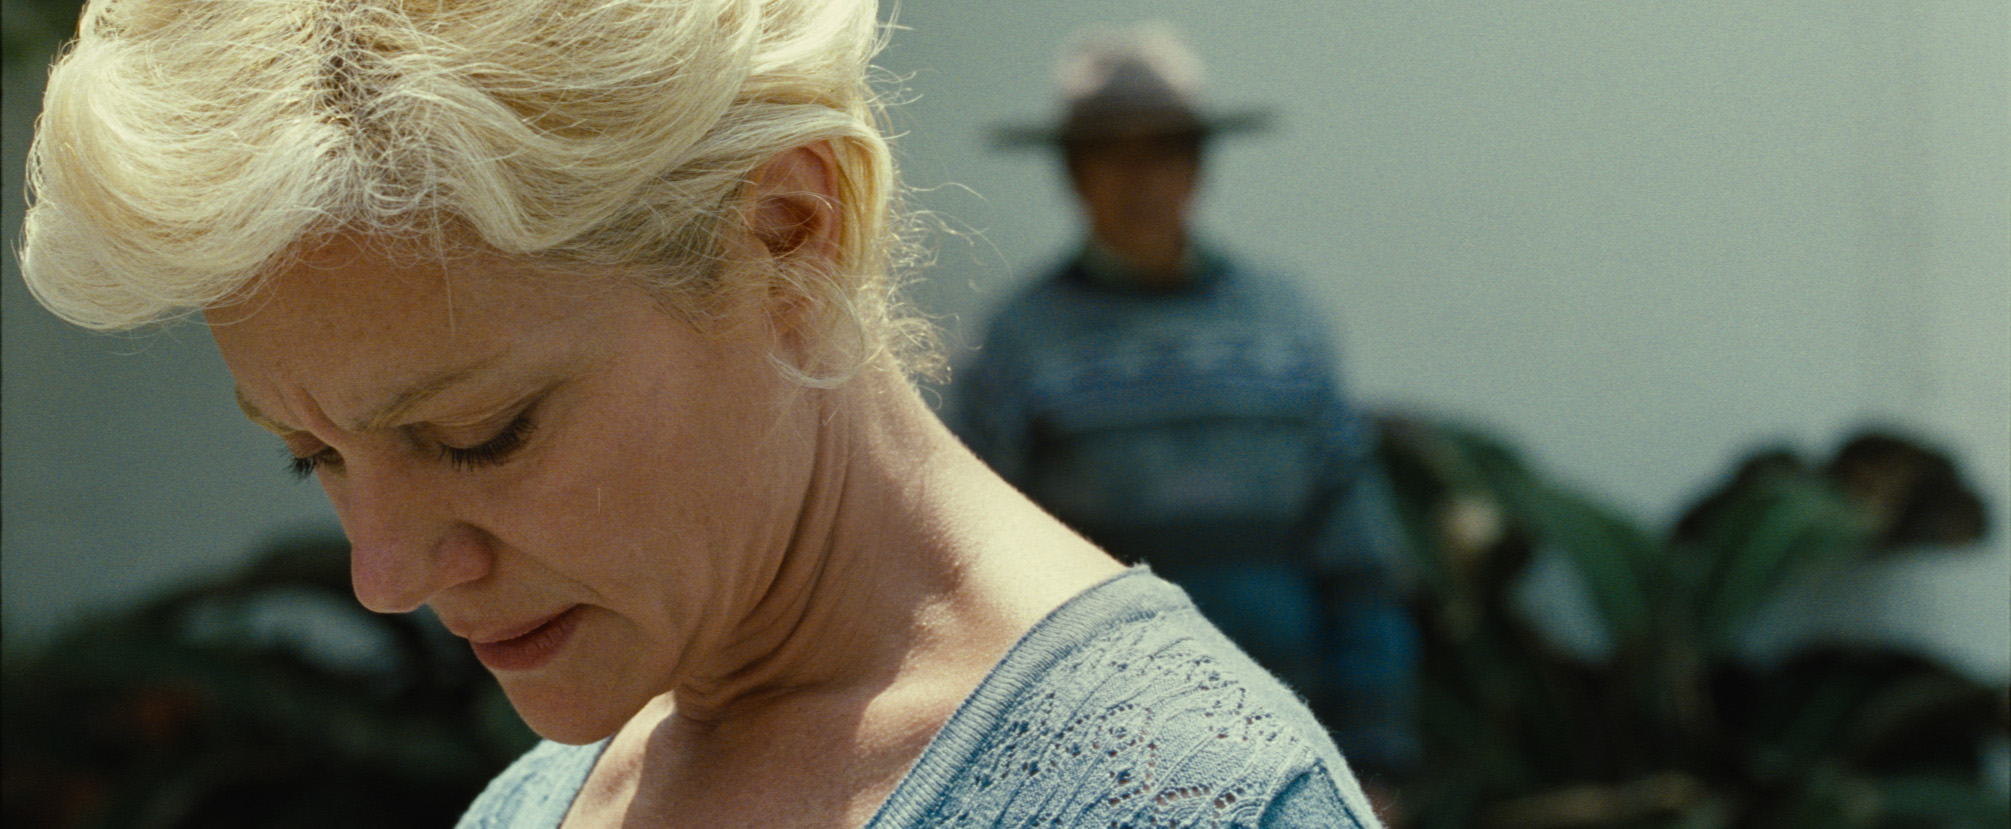 """María Onetto is Verónica in Lucretia Martel's newest film """"The Headless Woman"""""""